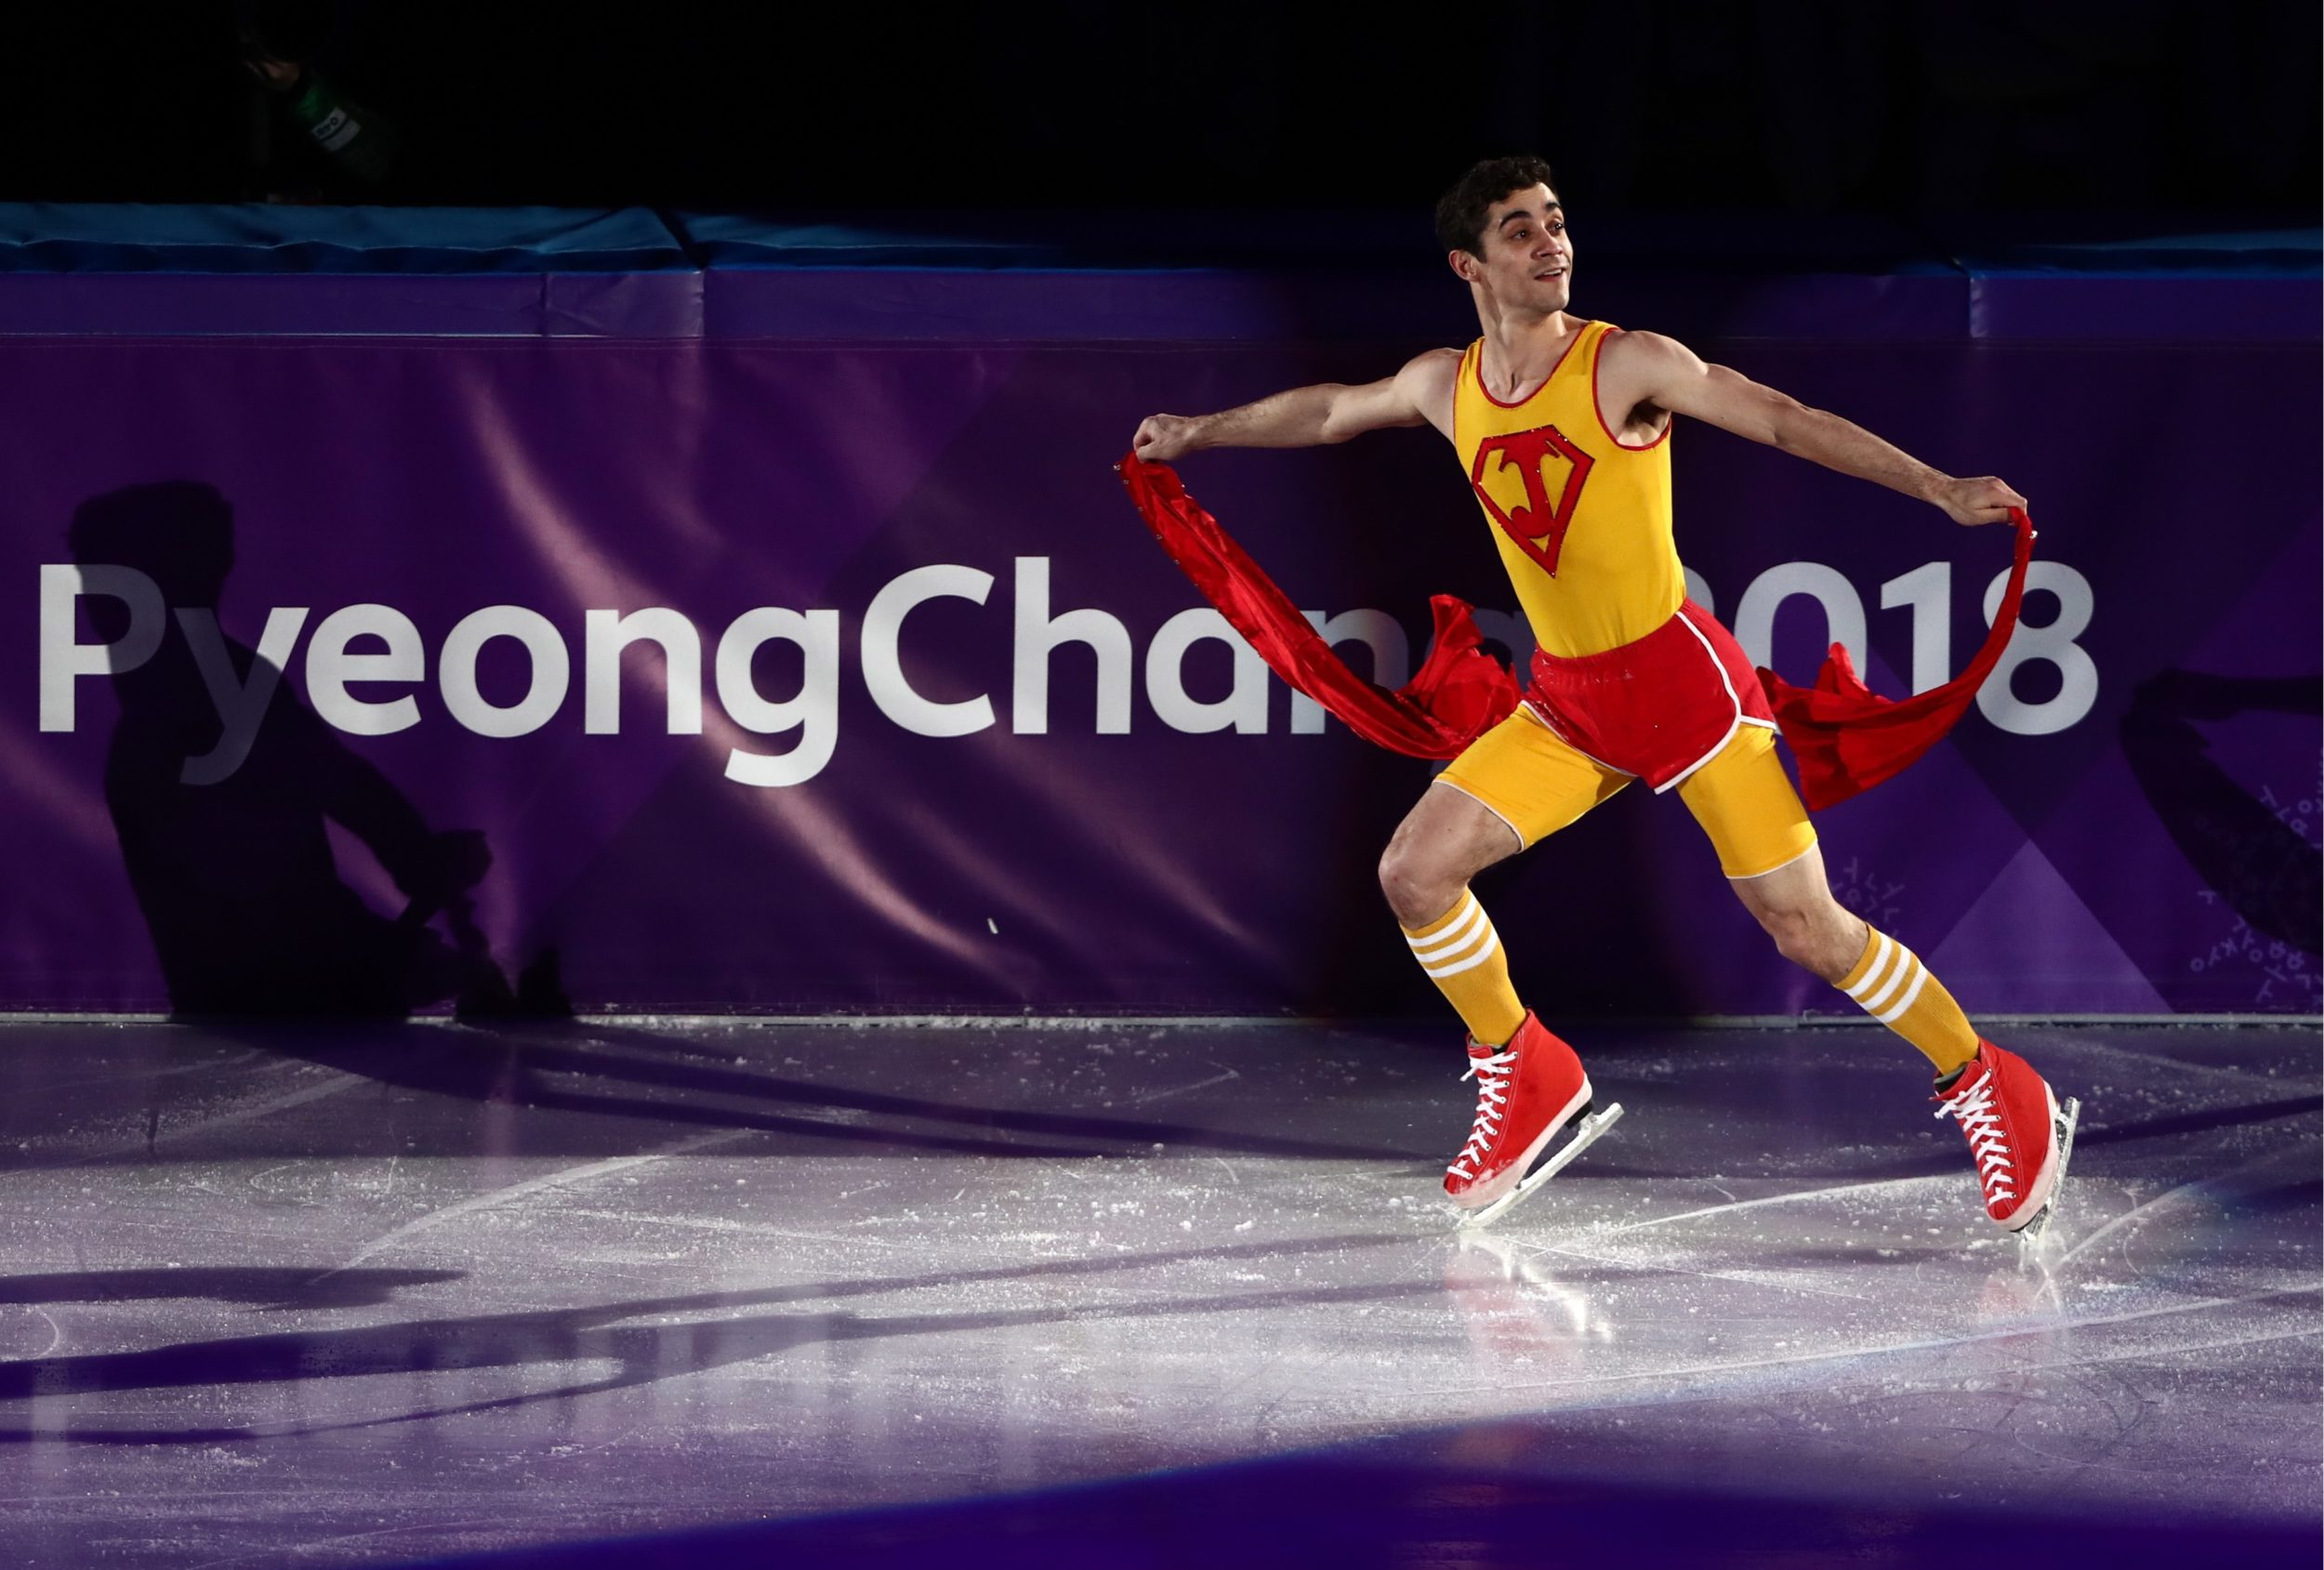 The best moments from the 2018 Winter Olympics figure skating exhibition gala